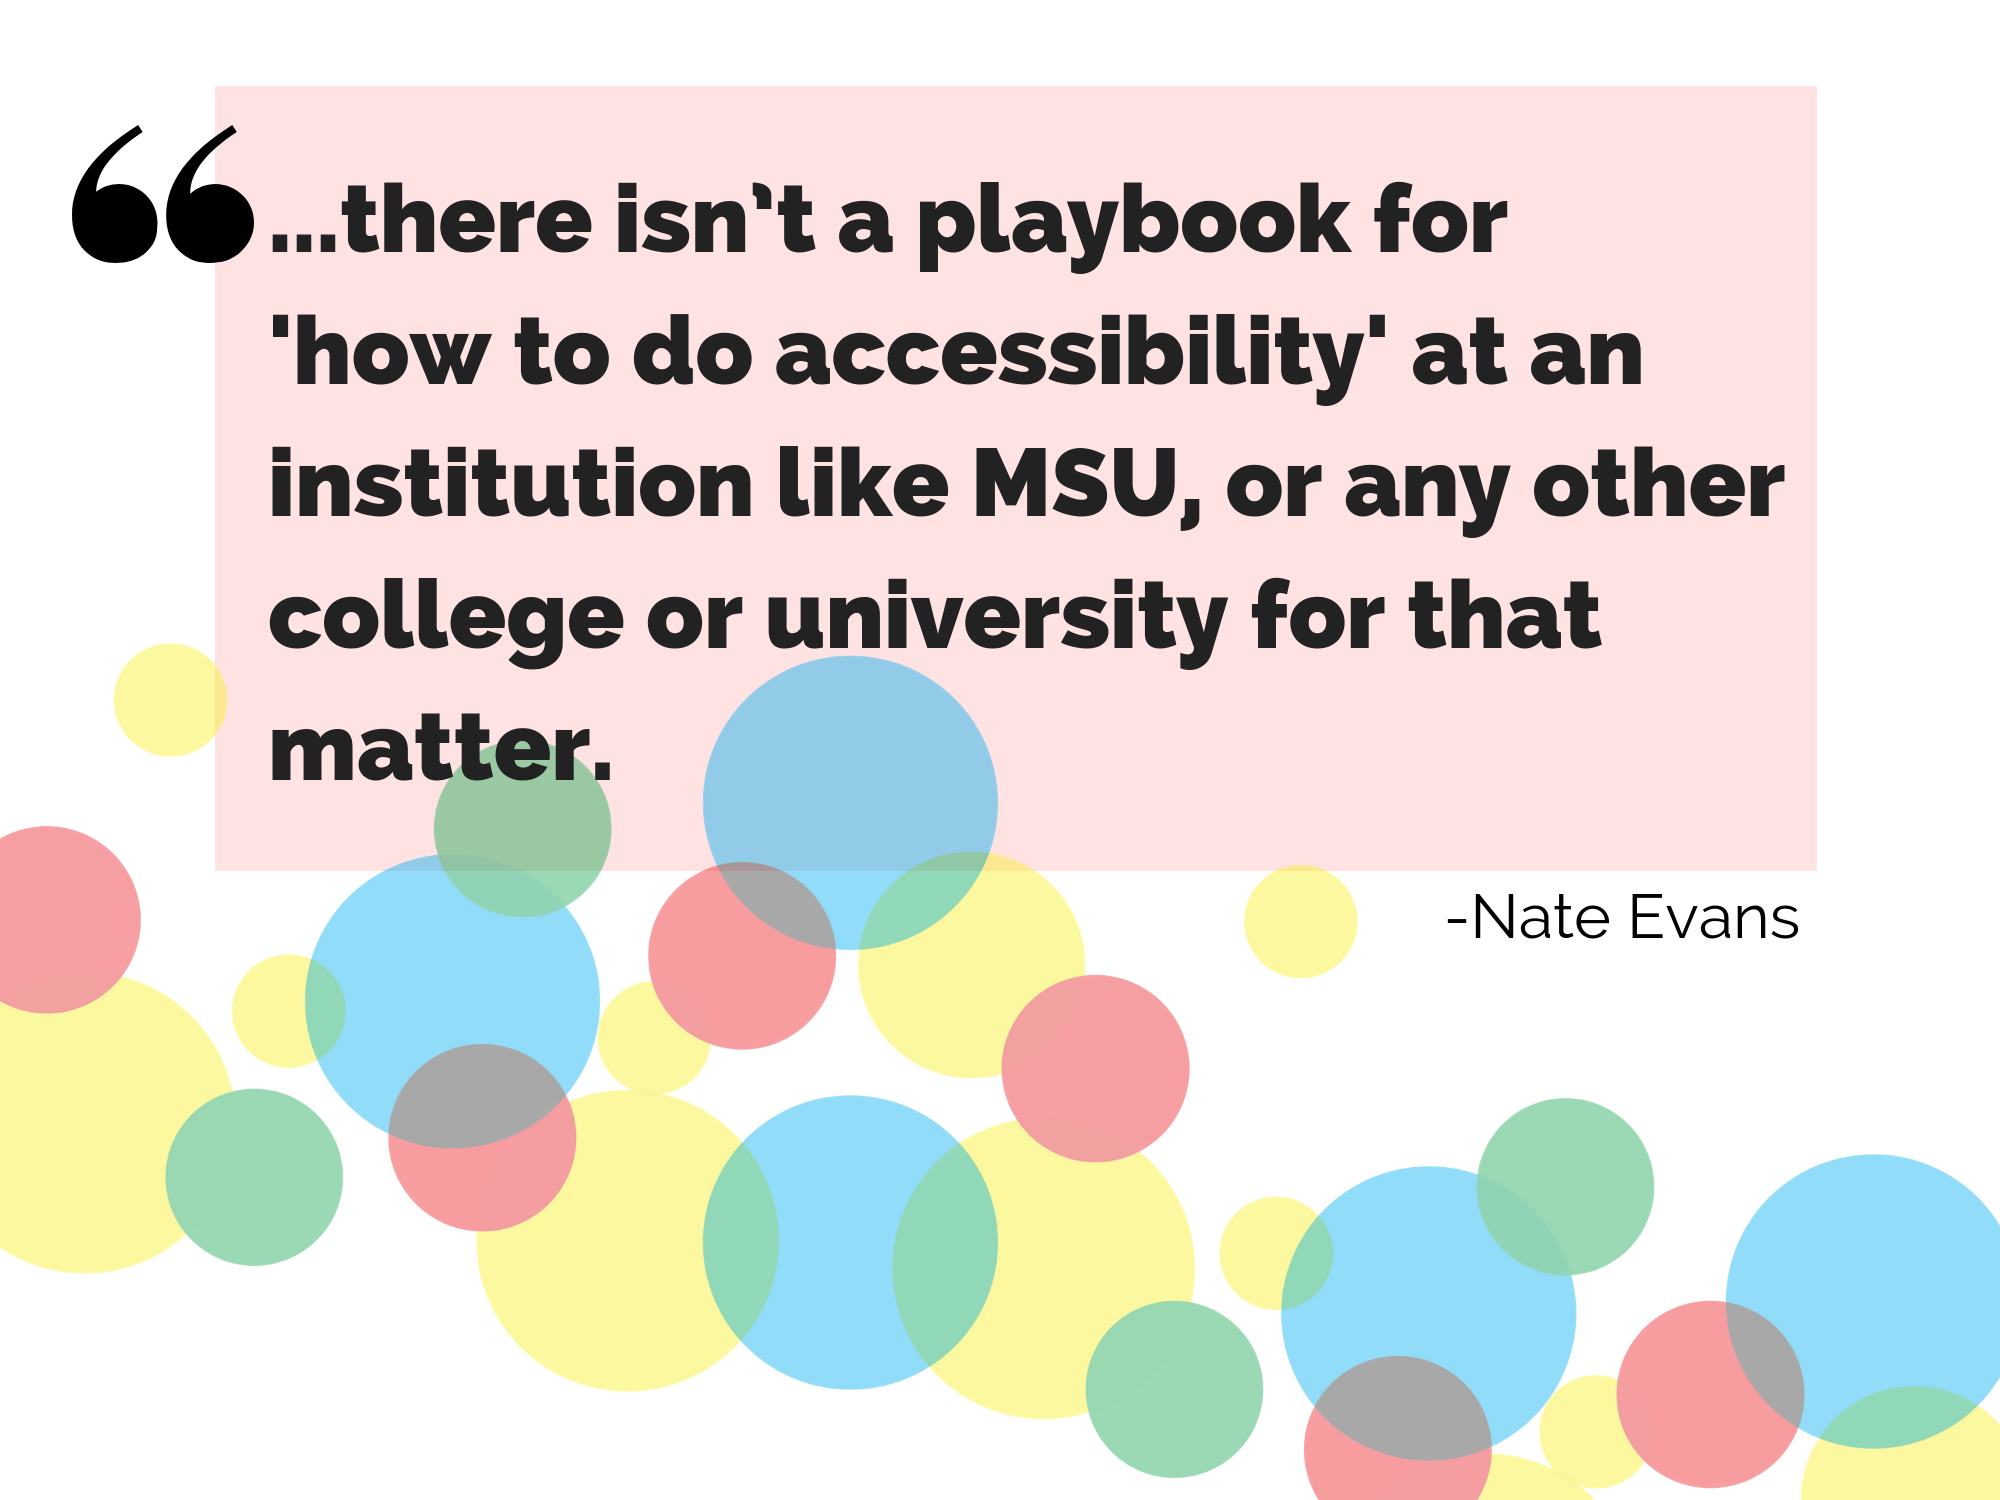 "A quotation by Nate Evans, the author of this blog post. He says, ""... there isn't a playbook for 'how to do accessibility' at an institution like MSU, or any other college or university for that matter."" Quote used to showcase the ambiguous notion of accessibility and the perceived lack of guidance."